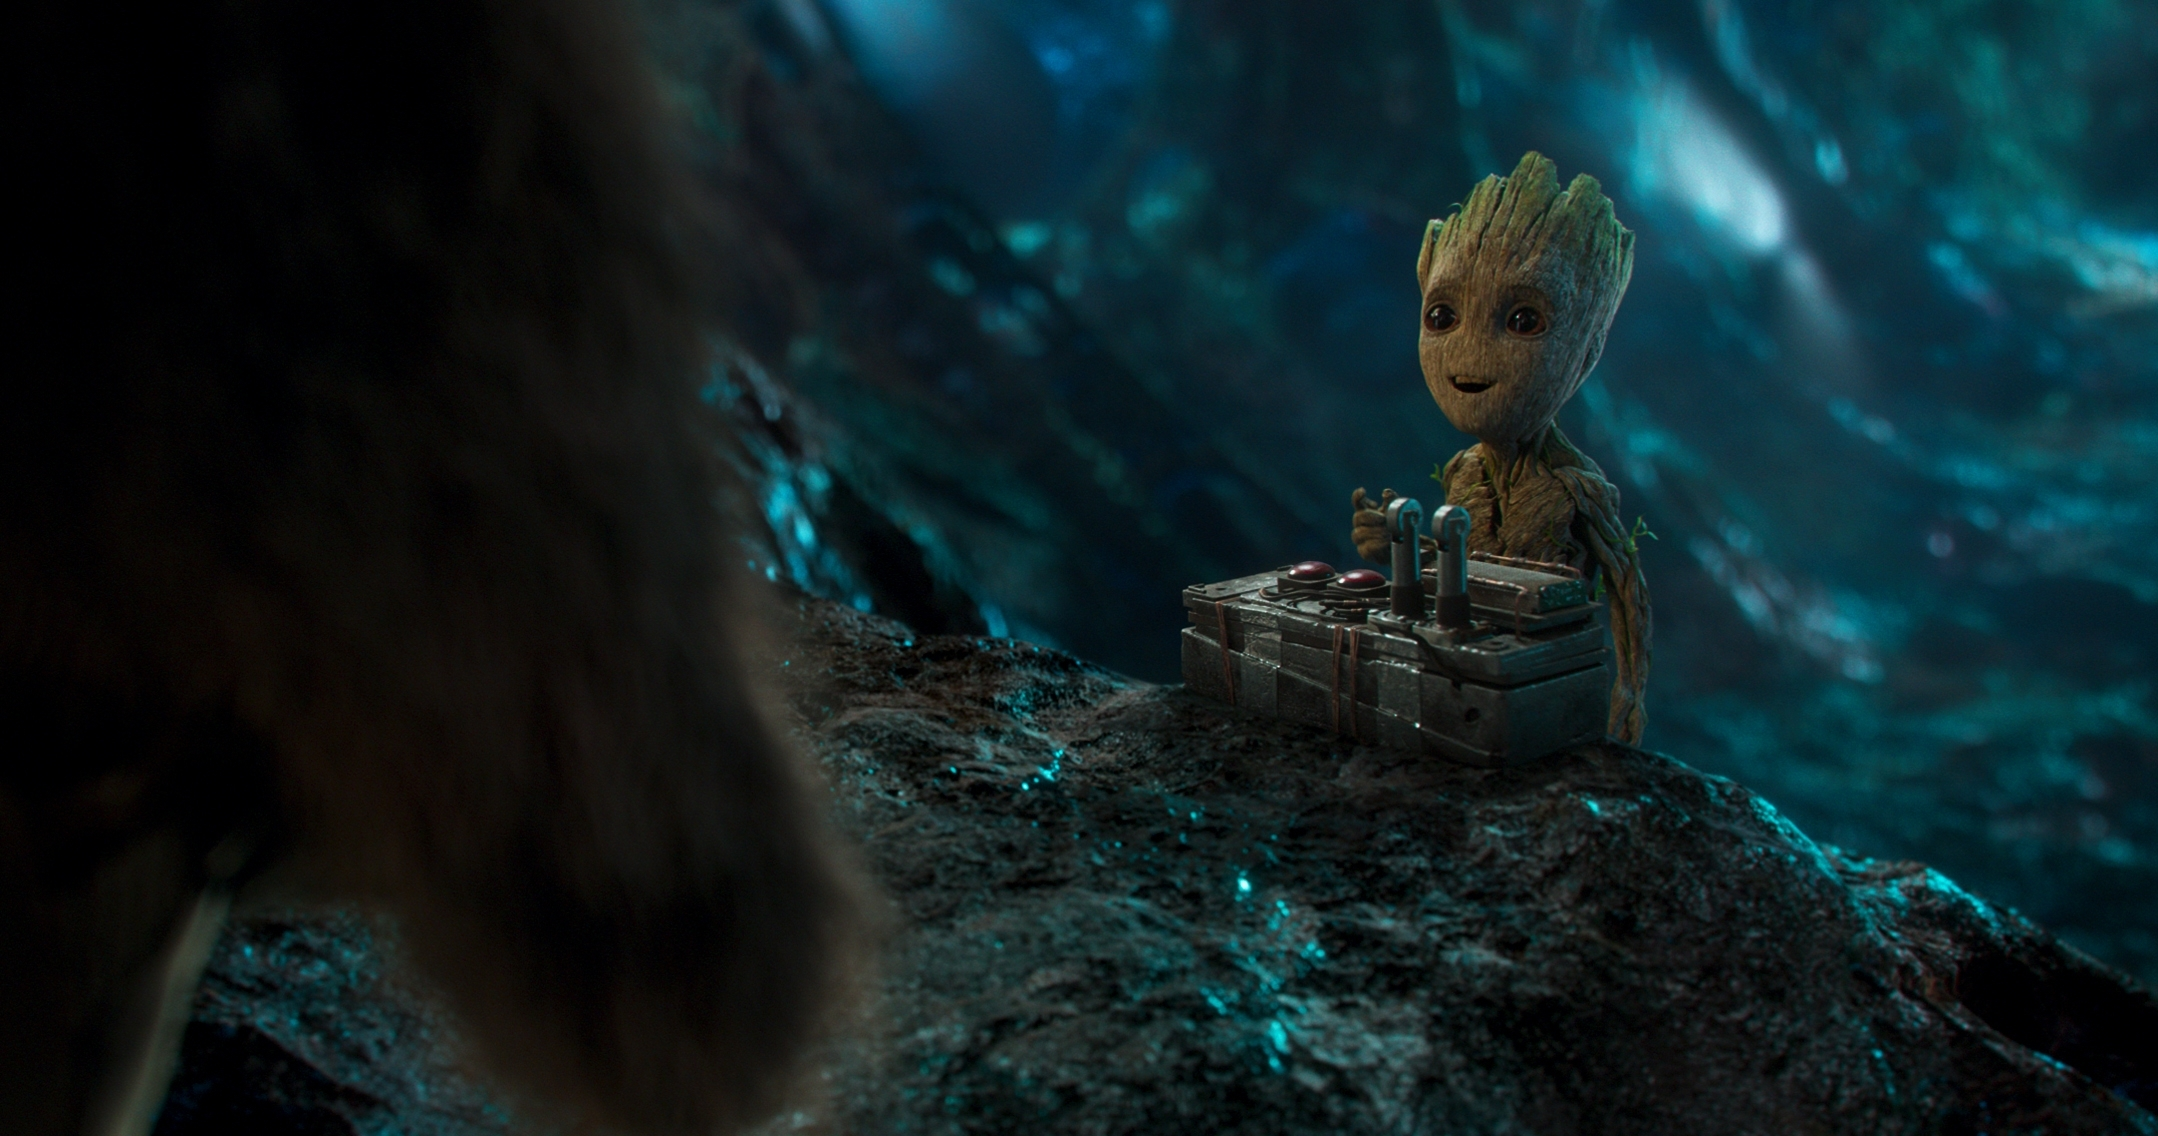 baby groot full hd wallpaper and background image | 2158x1136 | id